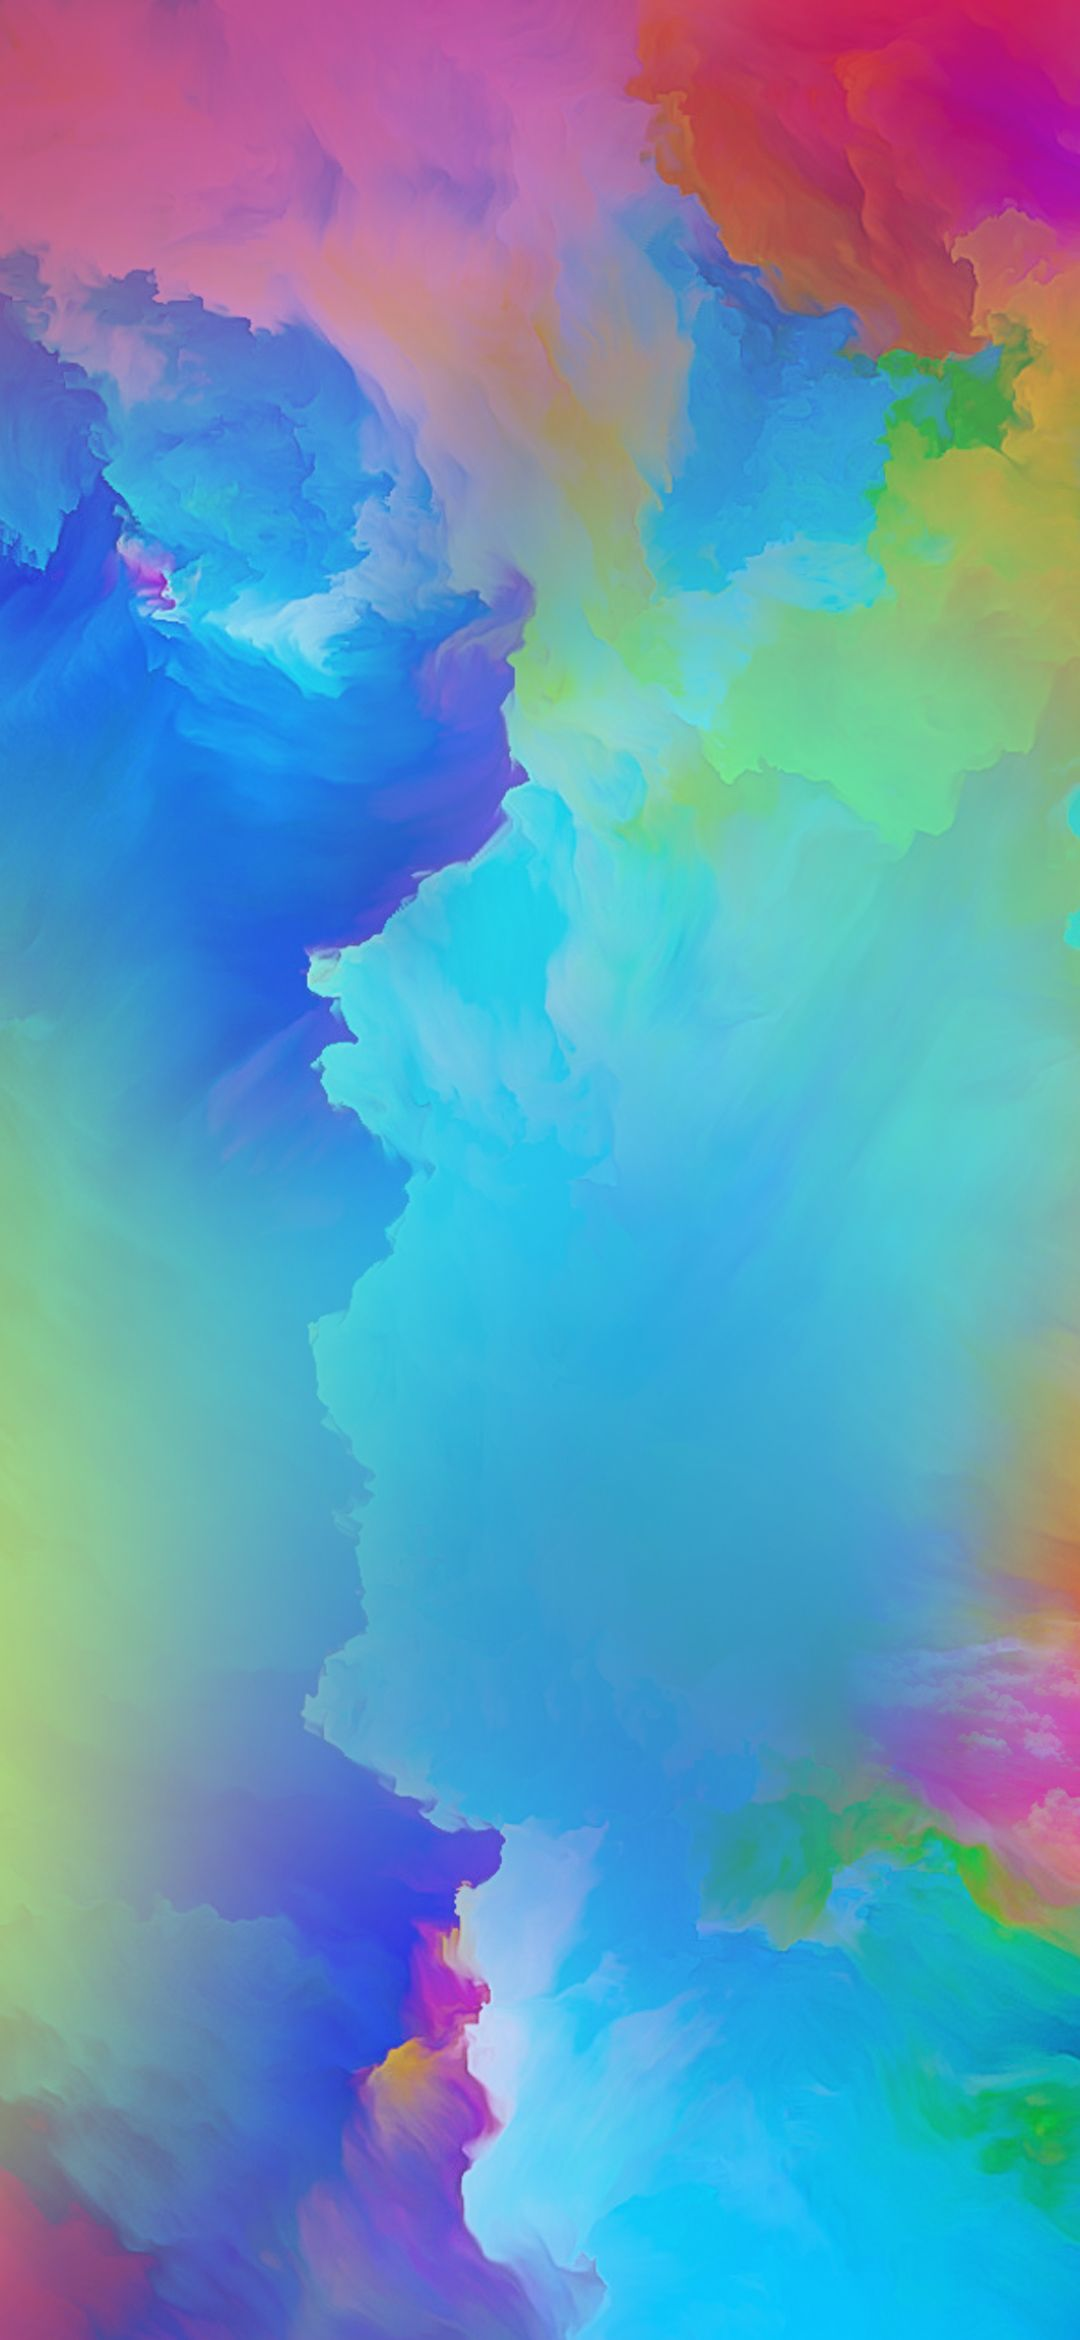 Samsung Galaxy M30 Stock Wallpaper 05   [1080x2340] 1080x2340